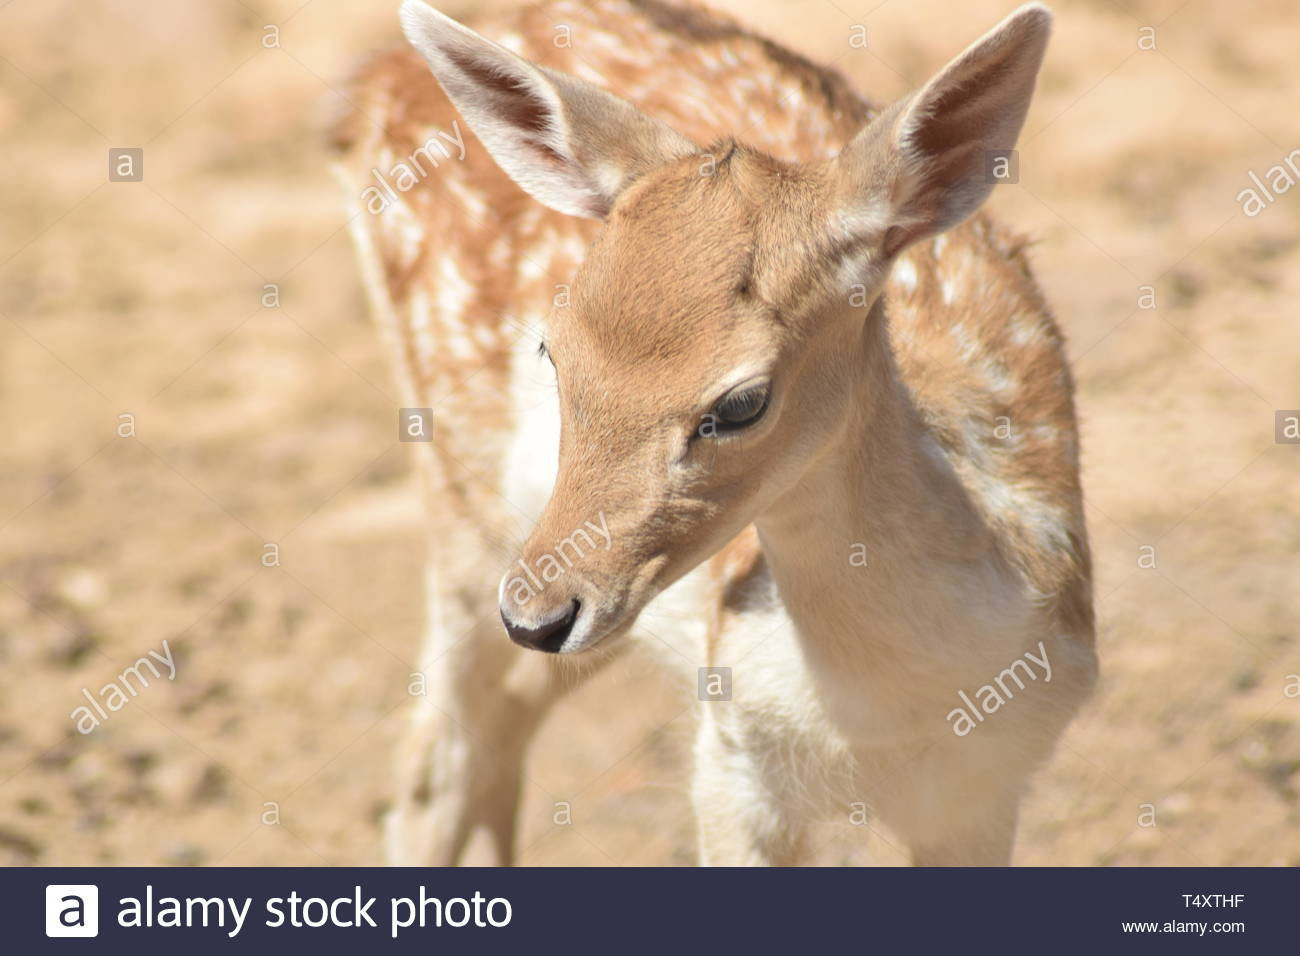 deer turns head to look - Stock Image